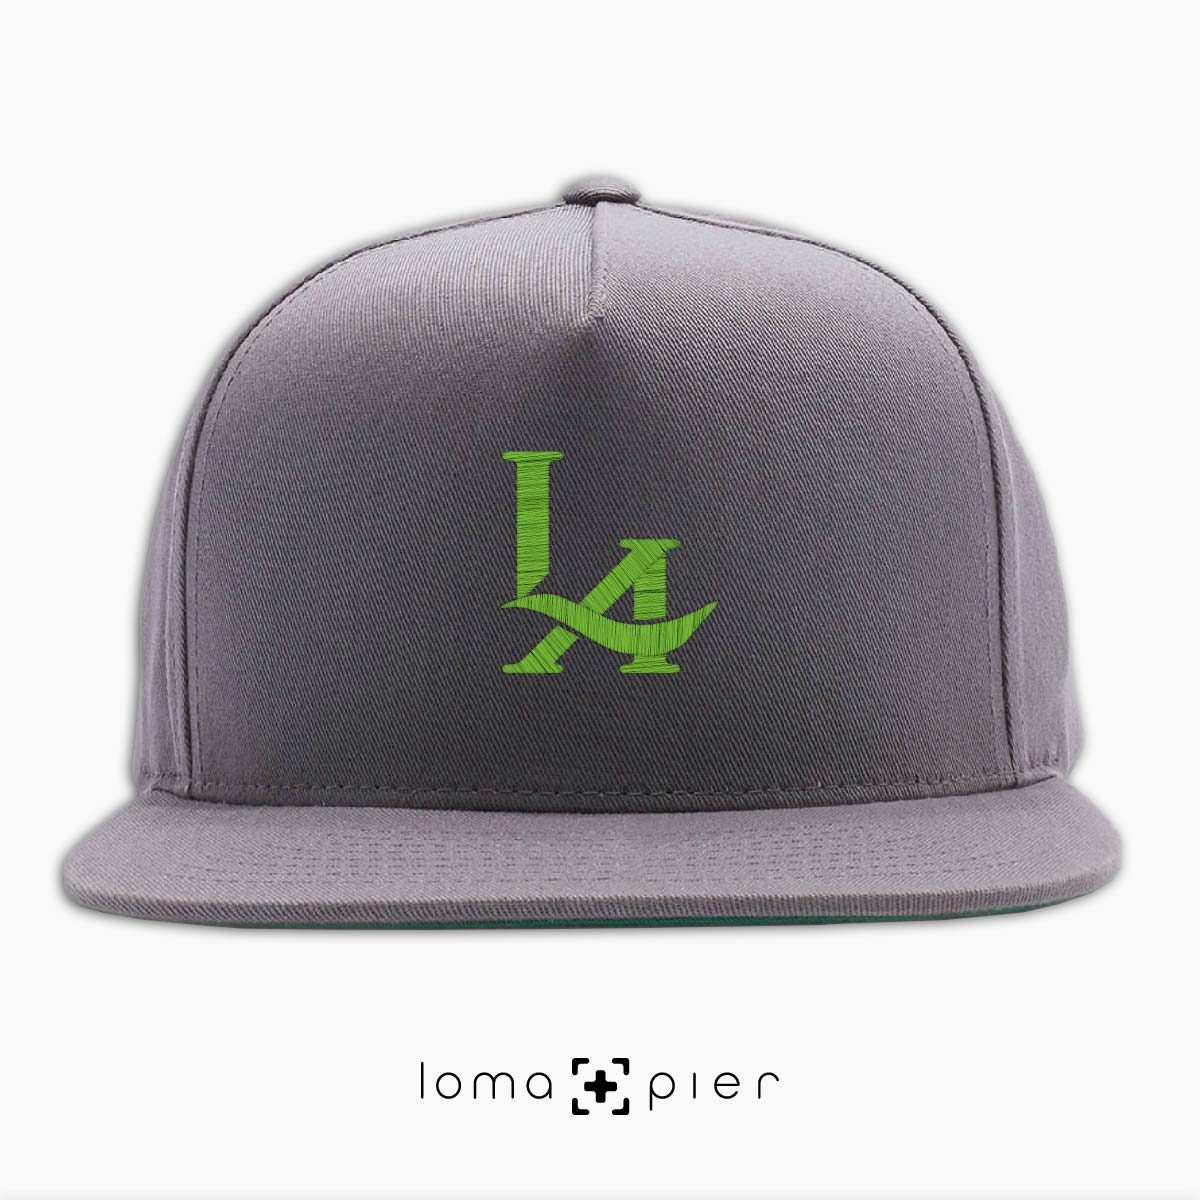 los angeles LA logo embroidered on a grey classic snapback hat by loma+pier hat store